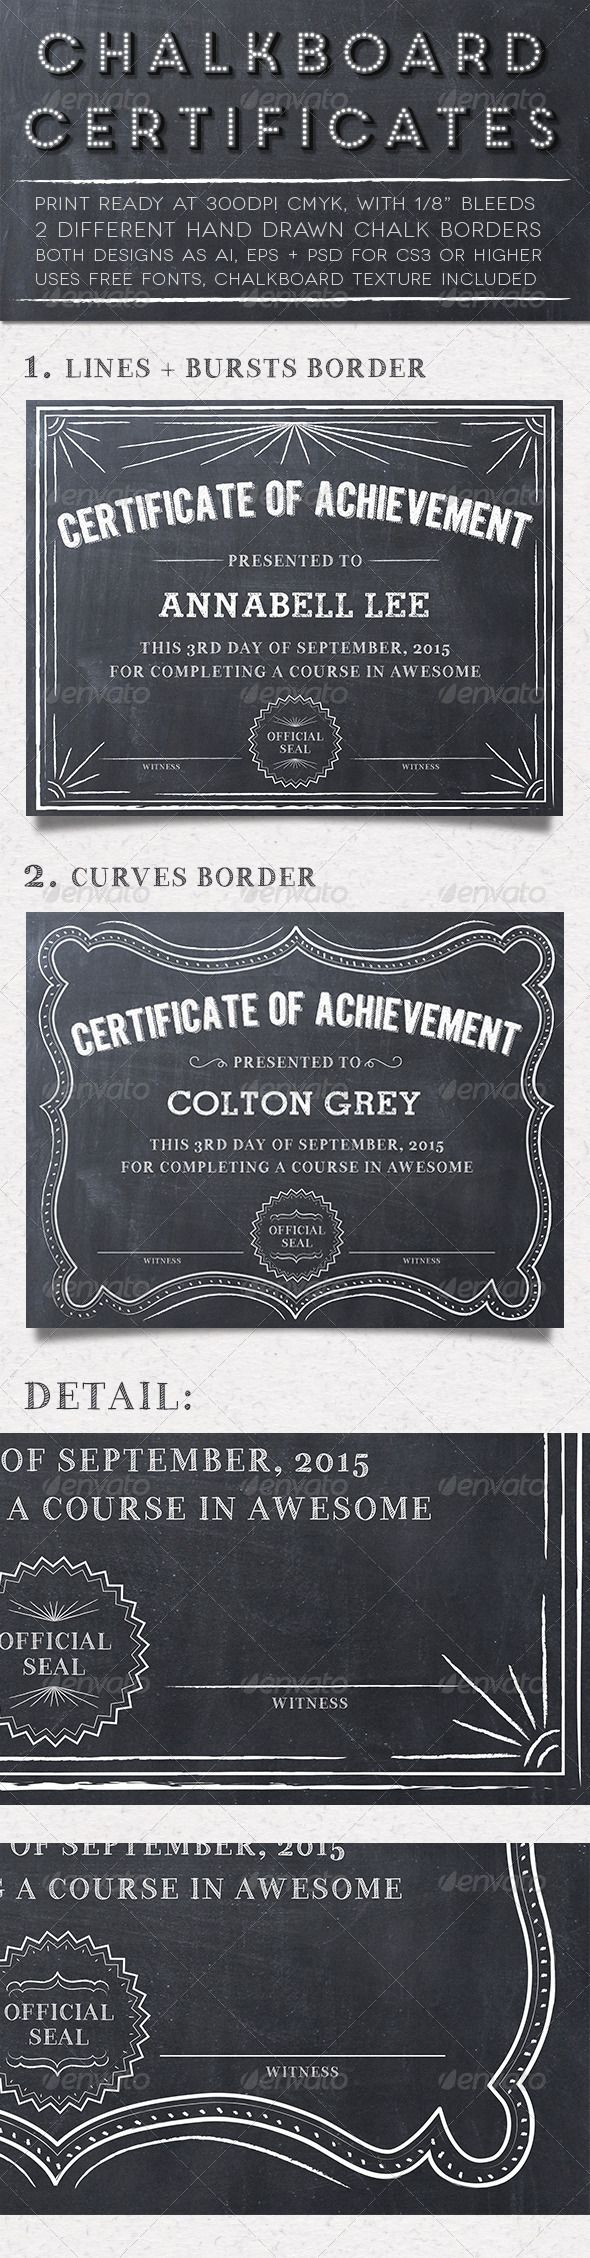 Chalkboard Certificate Template PSD, Vector EPS, Vector AI. Download here: http://graphicriver.net/item/chalkboard-certificates/5565189?s_rank=35&ref=yinkira